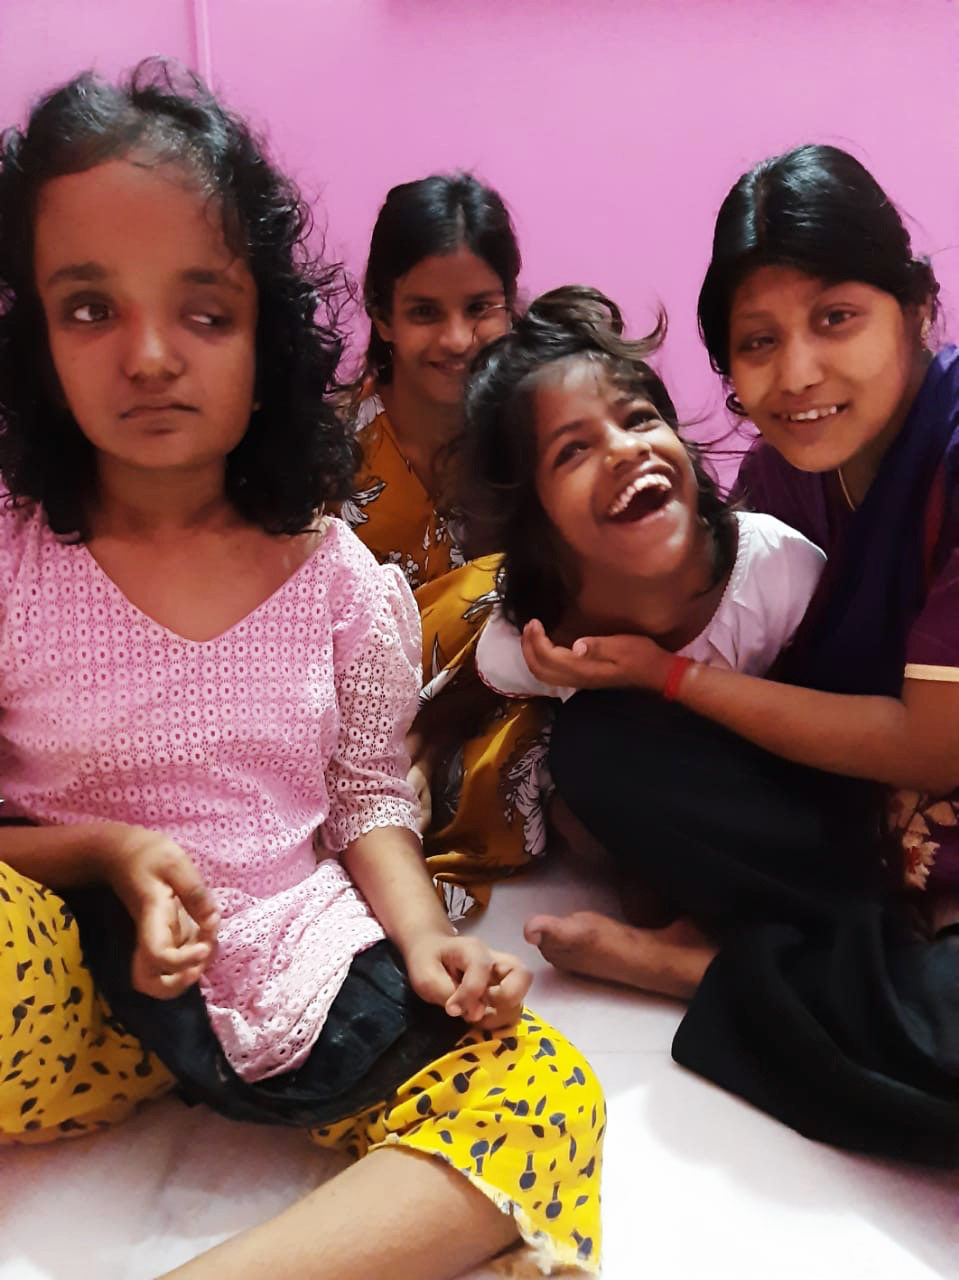 shuktara - the new pink Lula Bari